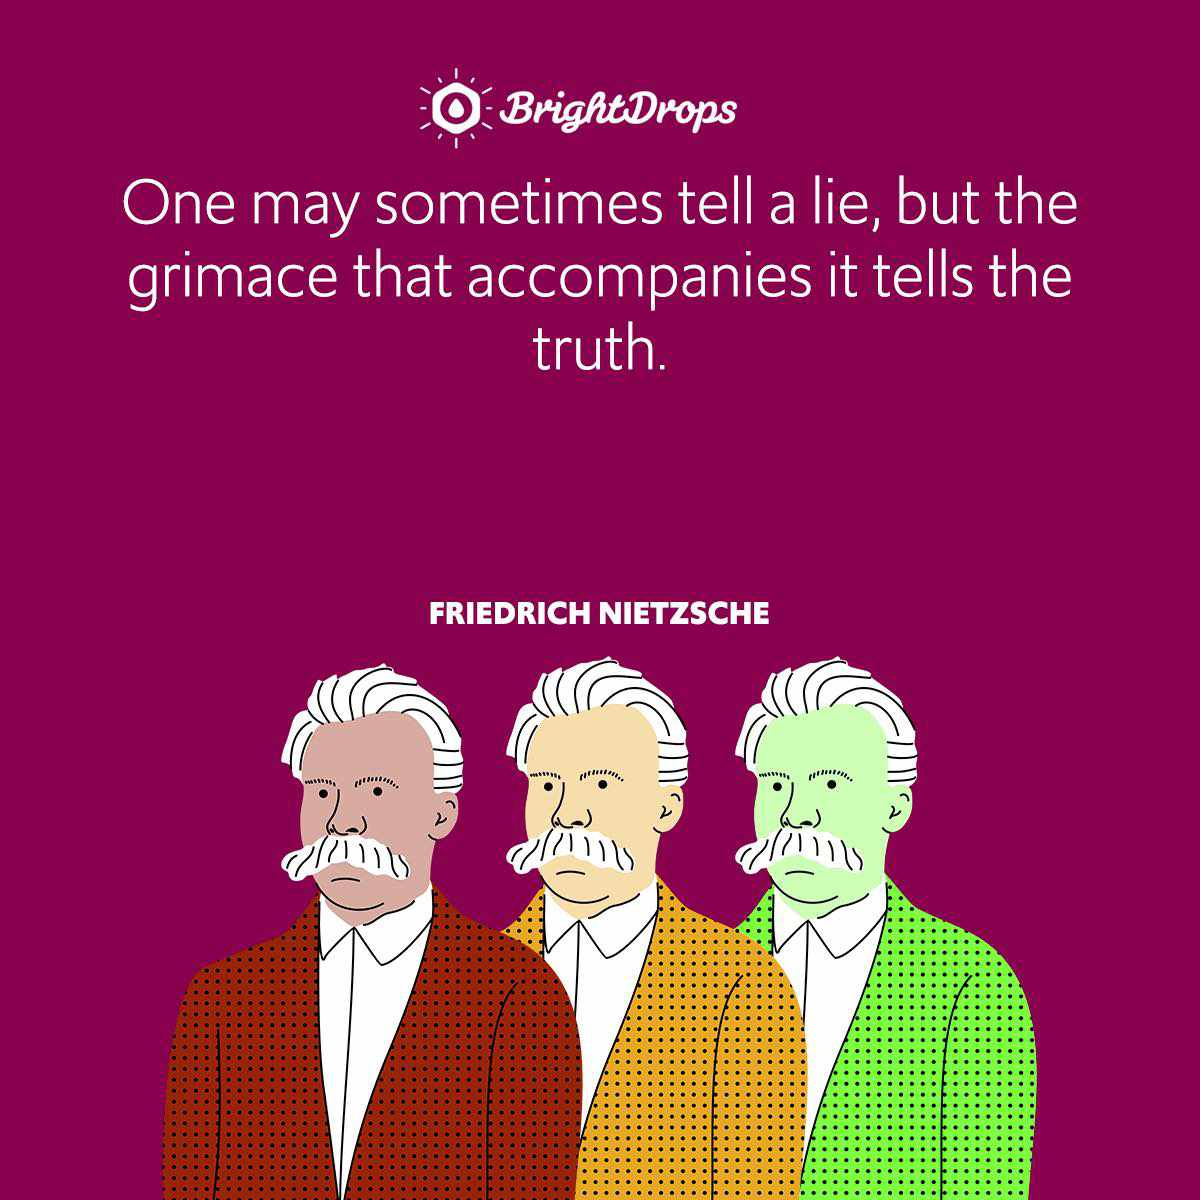 One may sometimes tell a lie, but the grimace that accompanies it tells the truth.